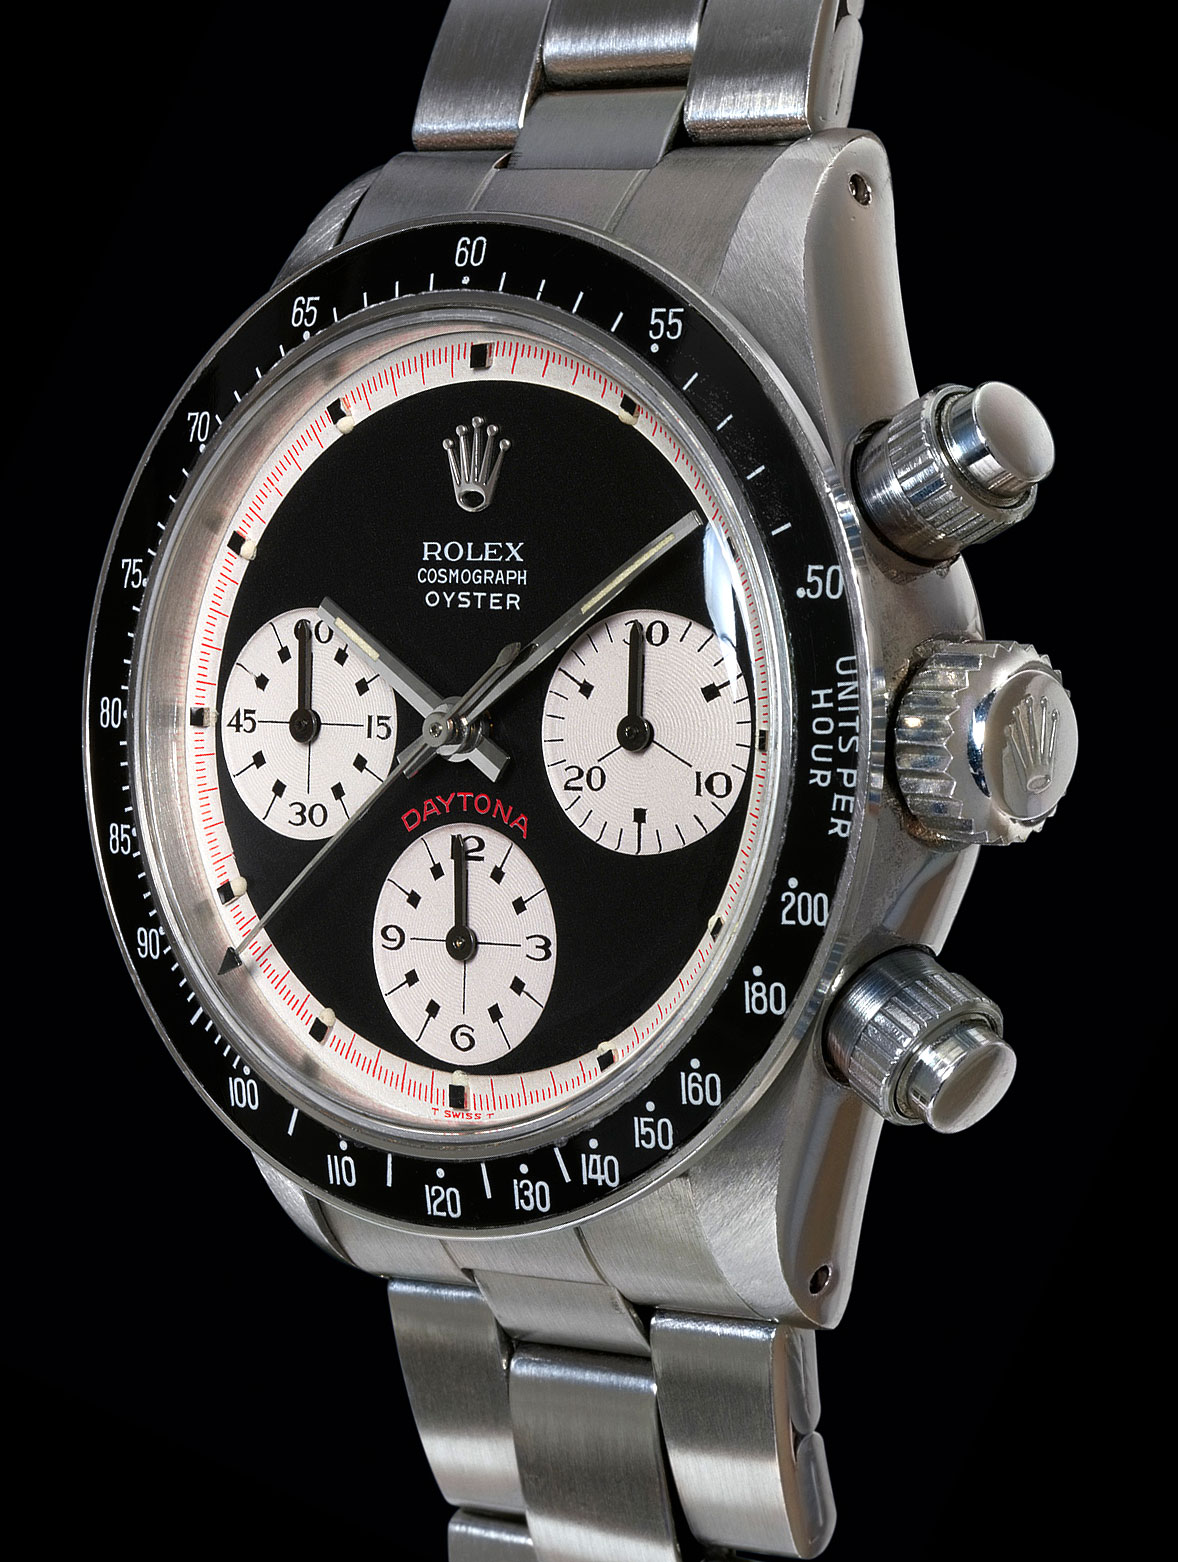 e65ac32f289 Home of Jake s Rolex World Magazine..Optimized for iPad and iPhone  The  Complete History Of The Rolex Daytona Cosmograph